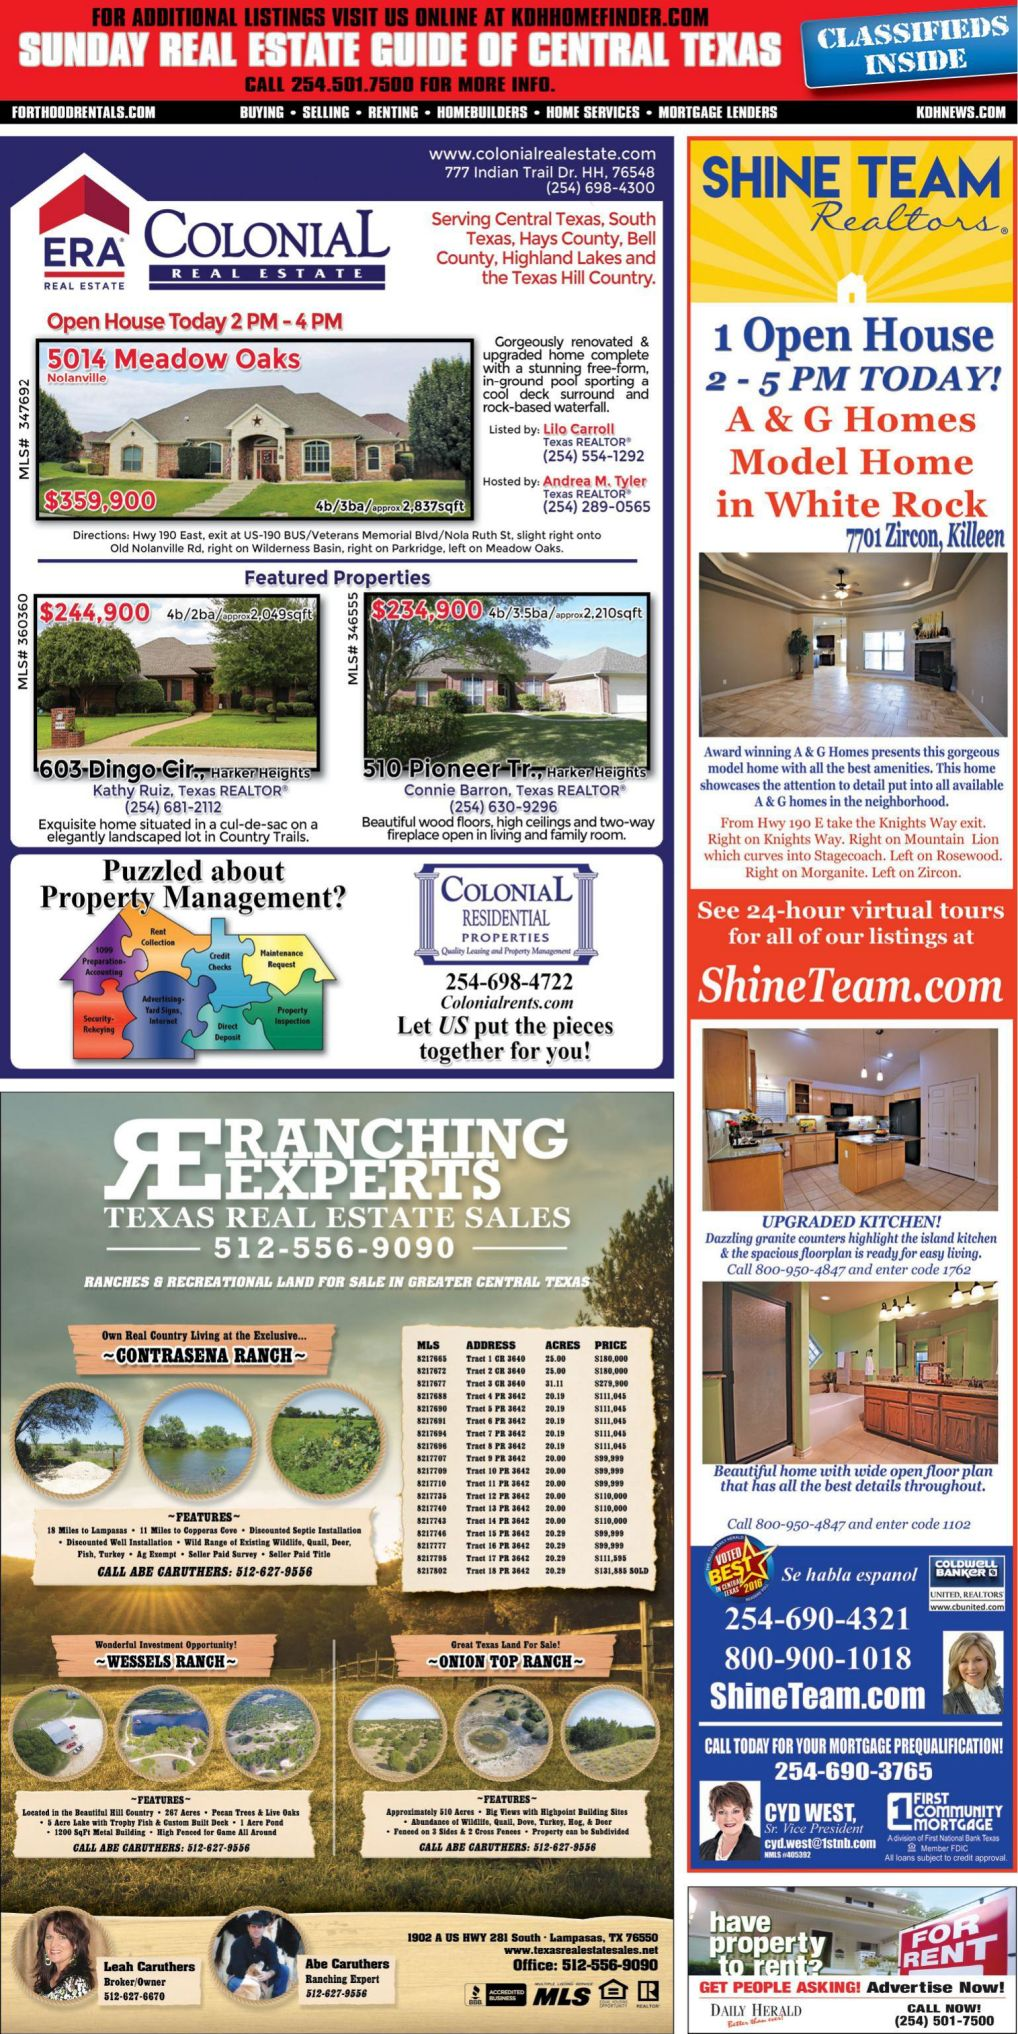 Sunday Real Estate Guide Oct. 7th